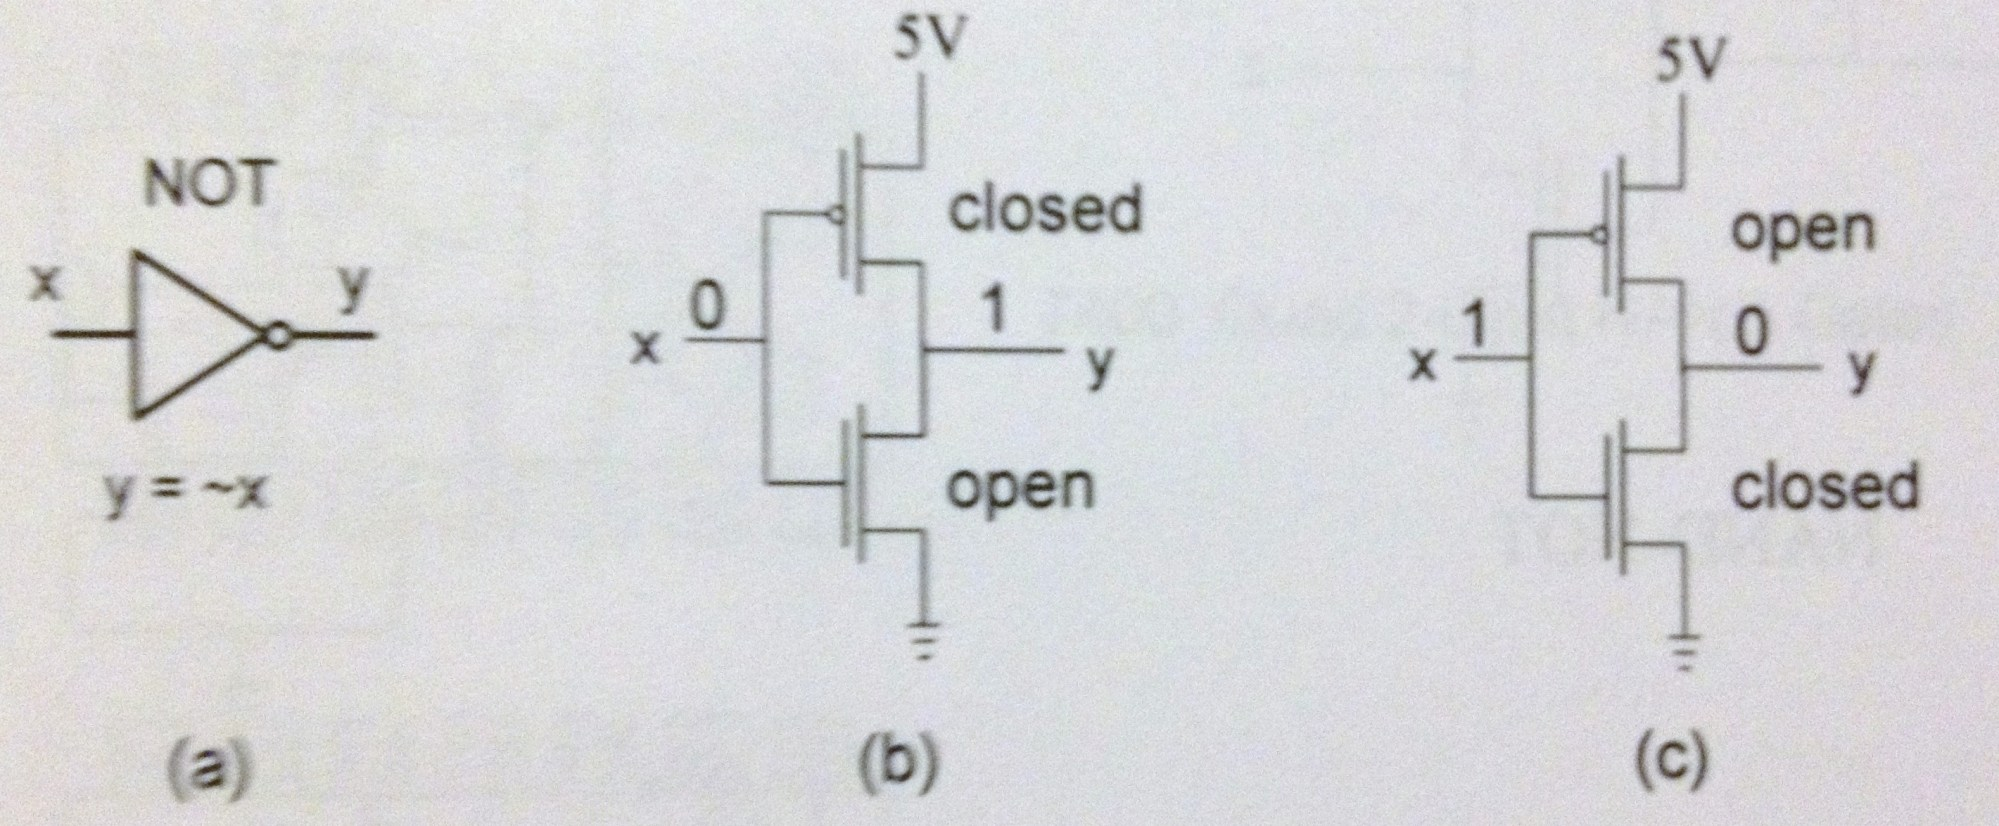 hight resolution of circuit diagram for a not gate